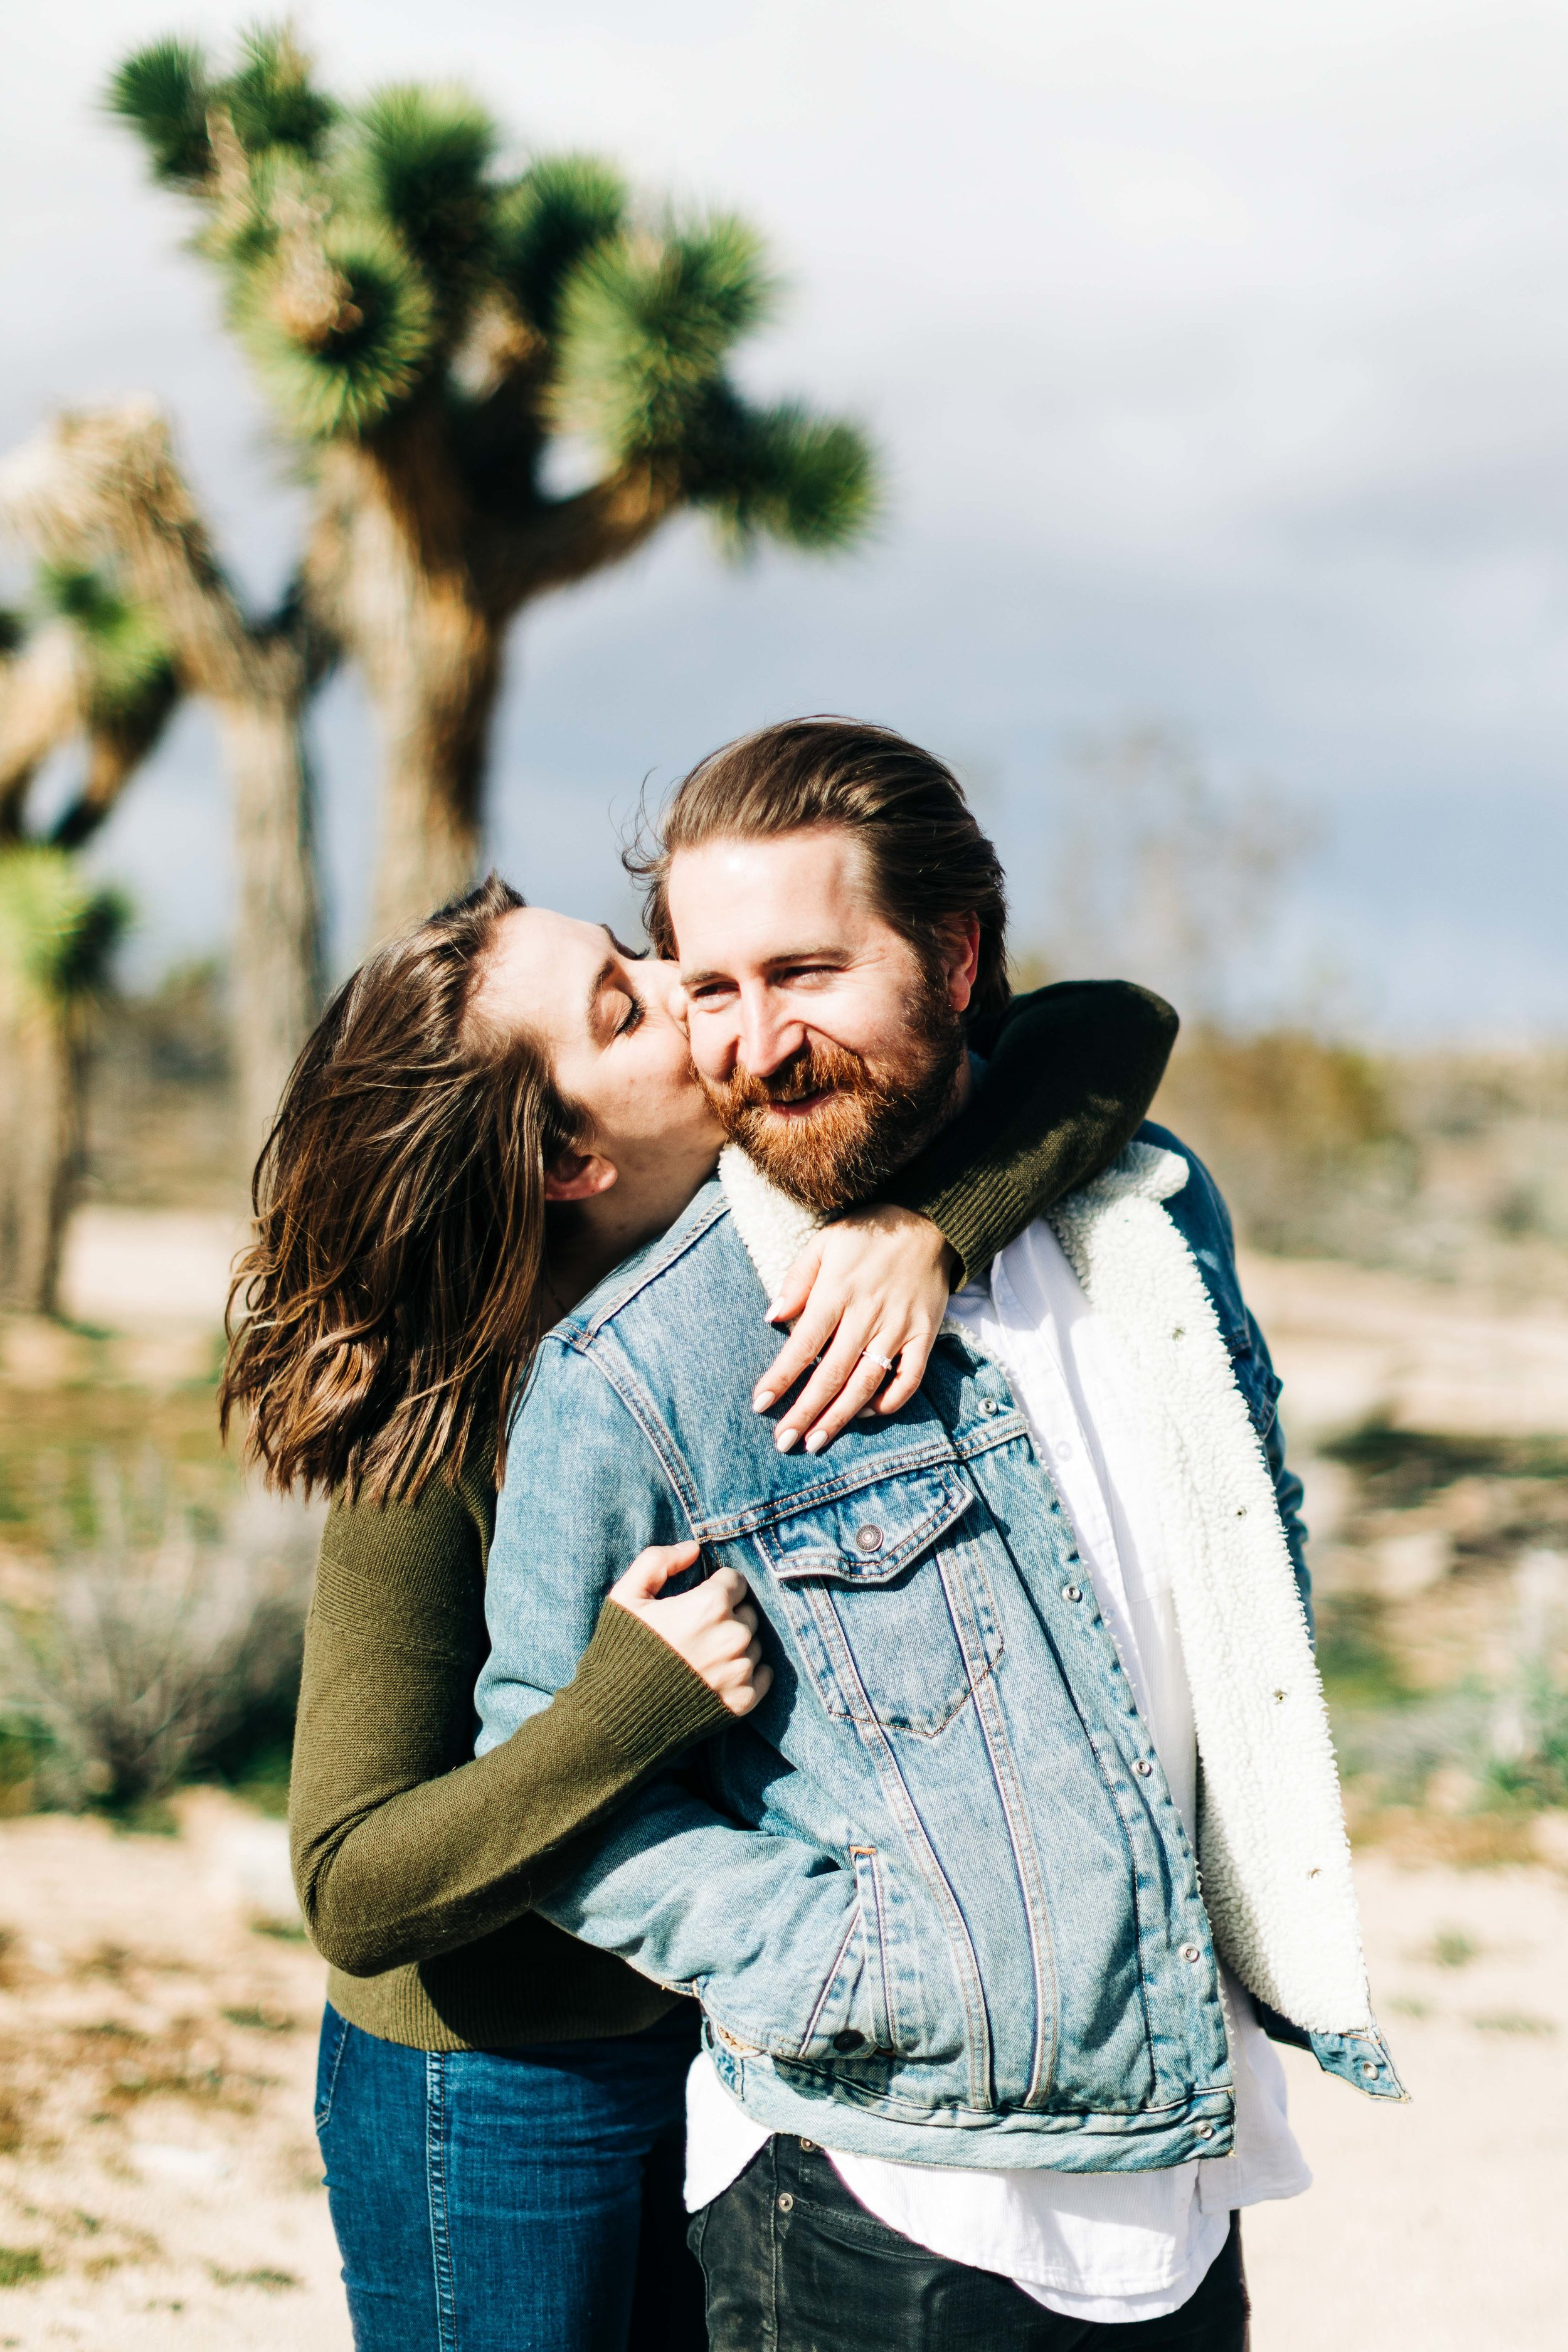 Hayley&Boomer_Joshua-Tree-Engagement-Photos_Tiny-Home_Southern-California-Wedding-Photographer_47